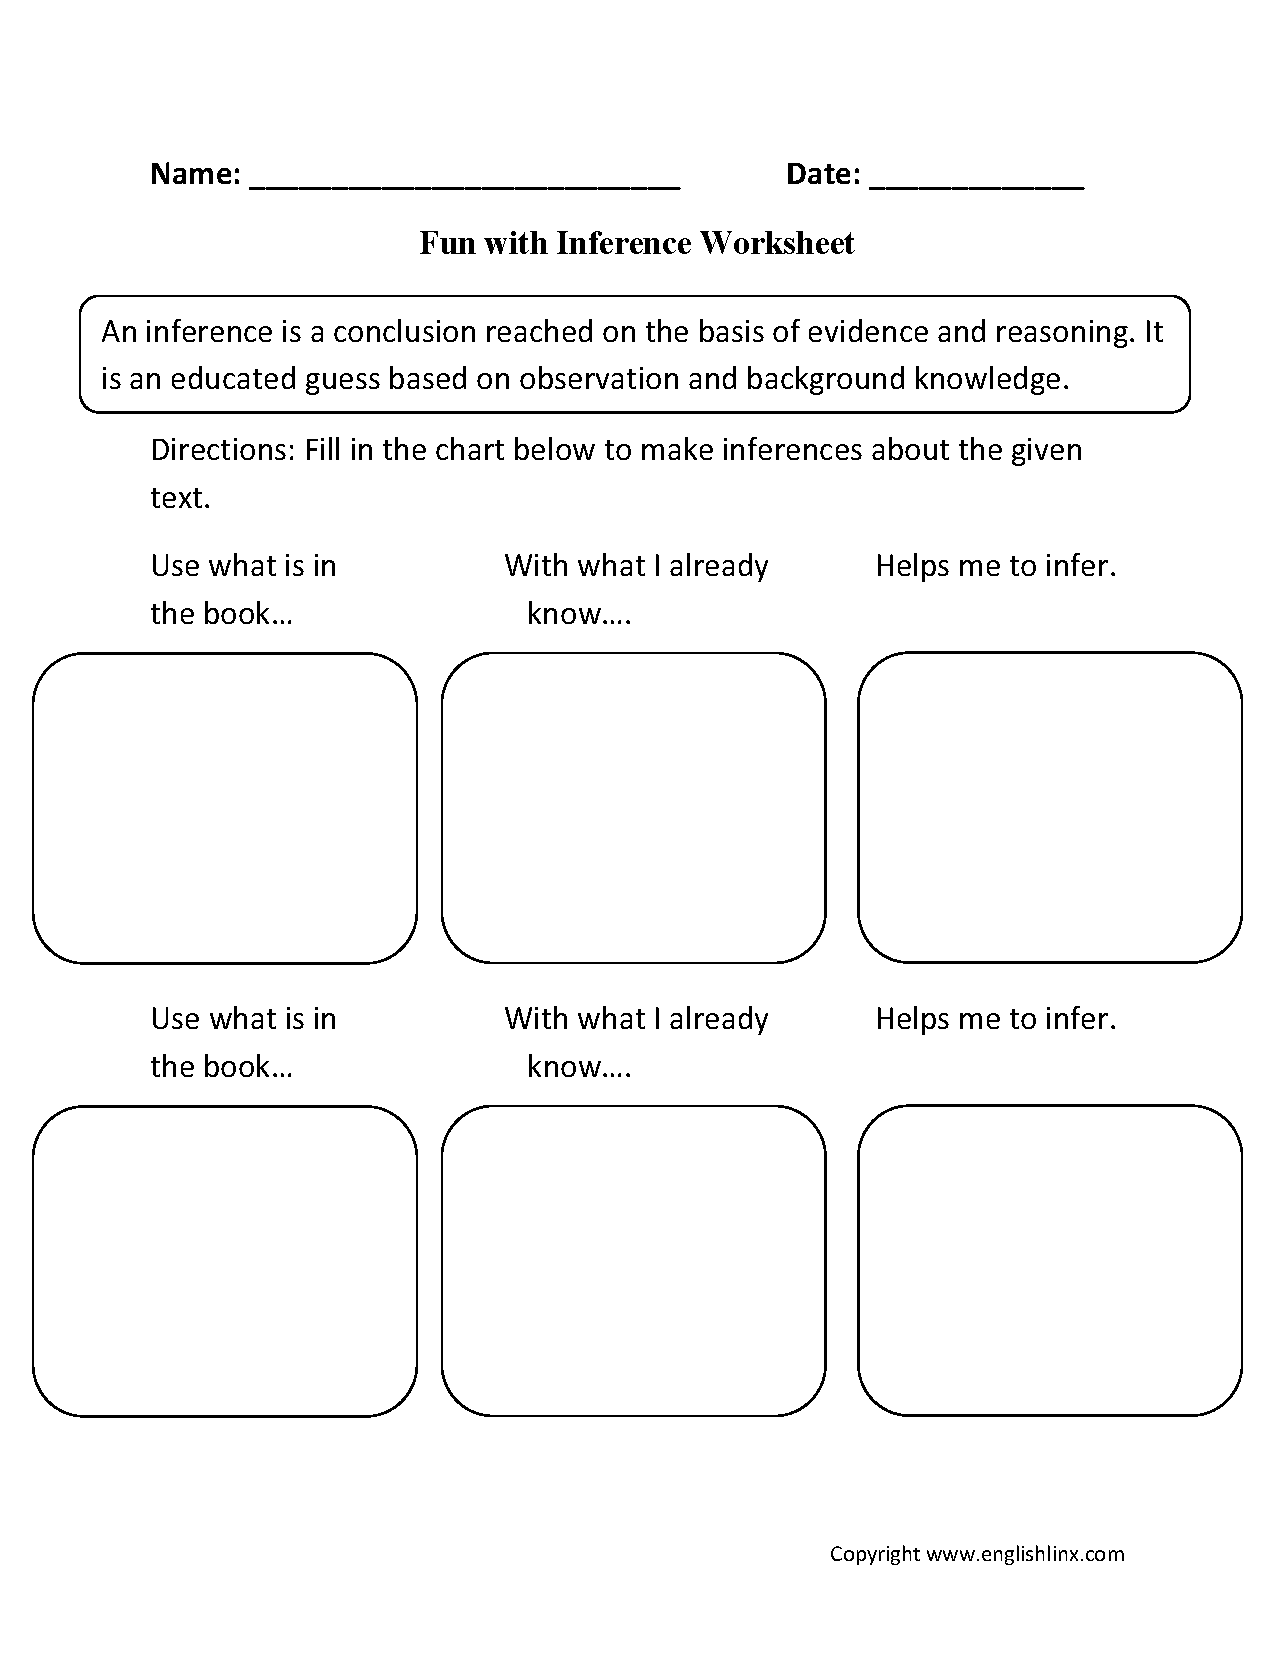 Reading Worksheets   Inference Worksheets   Reading worksheets [ 1672 x 1275 Pixel ]